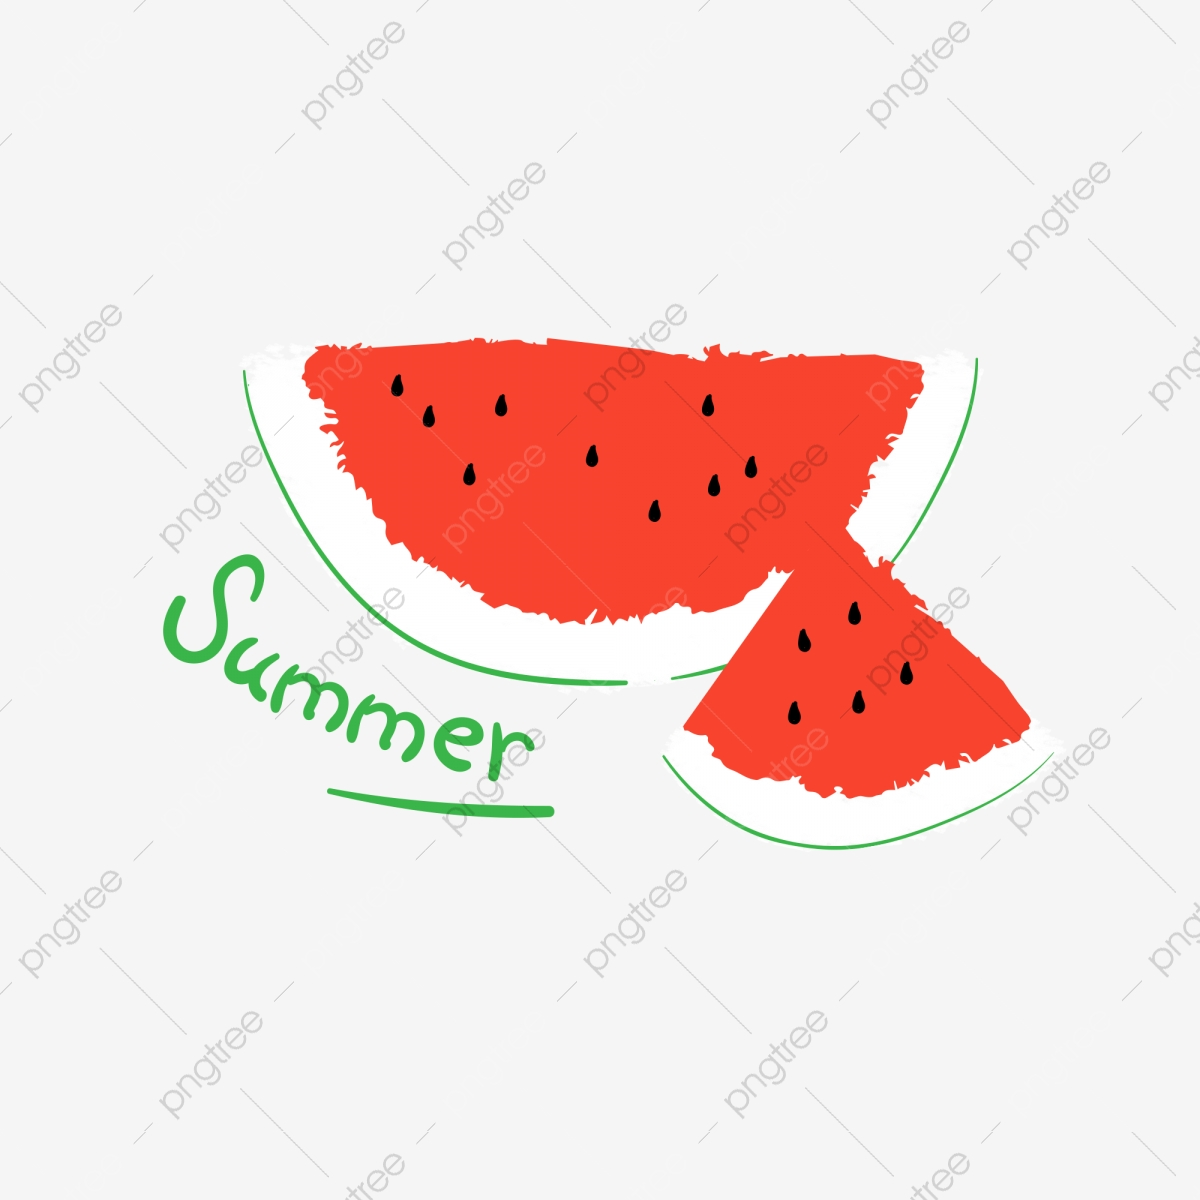 Watermelon clipart skin. Summer hot seed